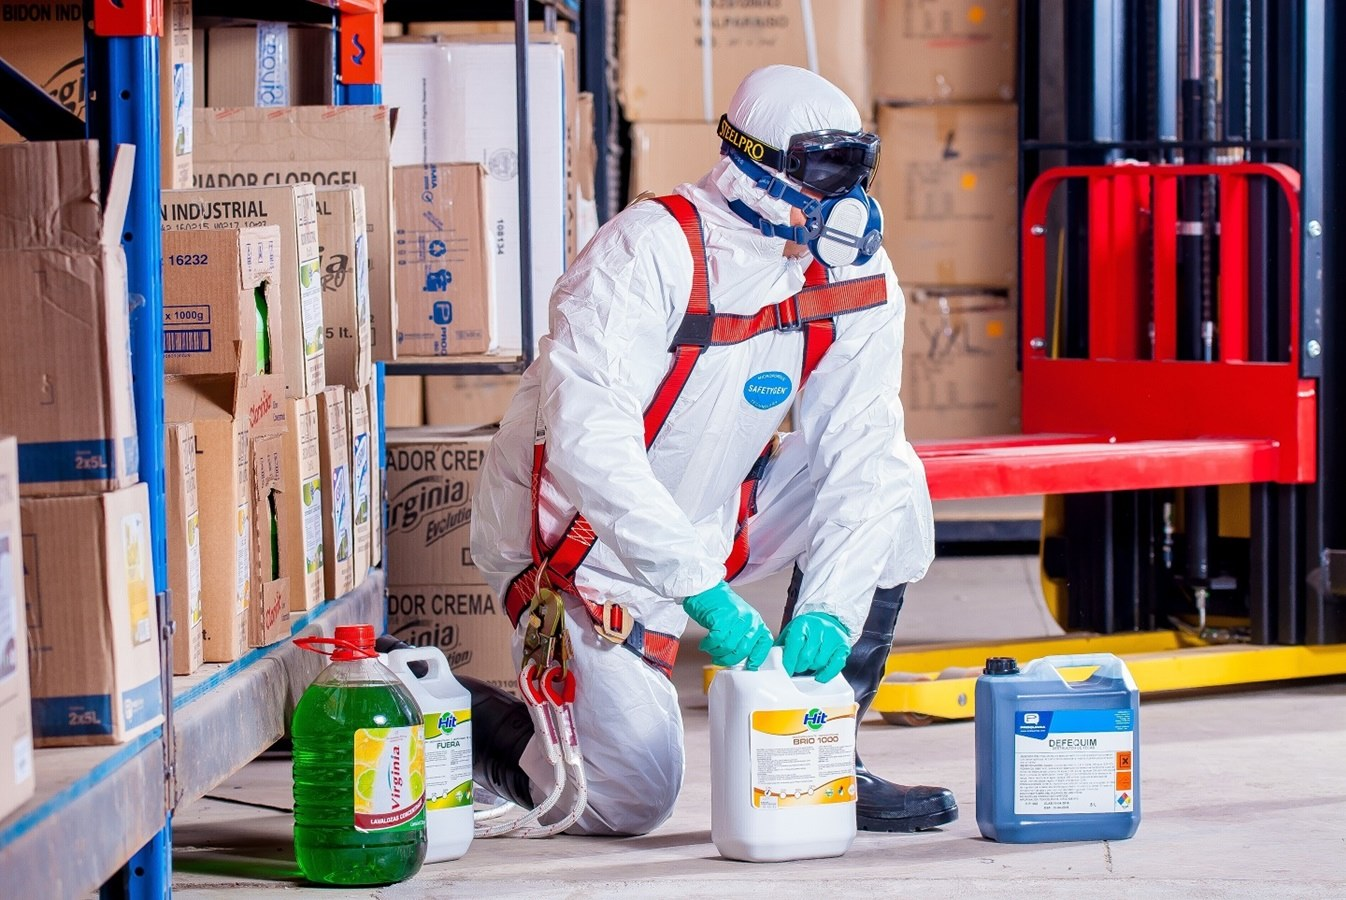 Disinfecting chemicals and a man